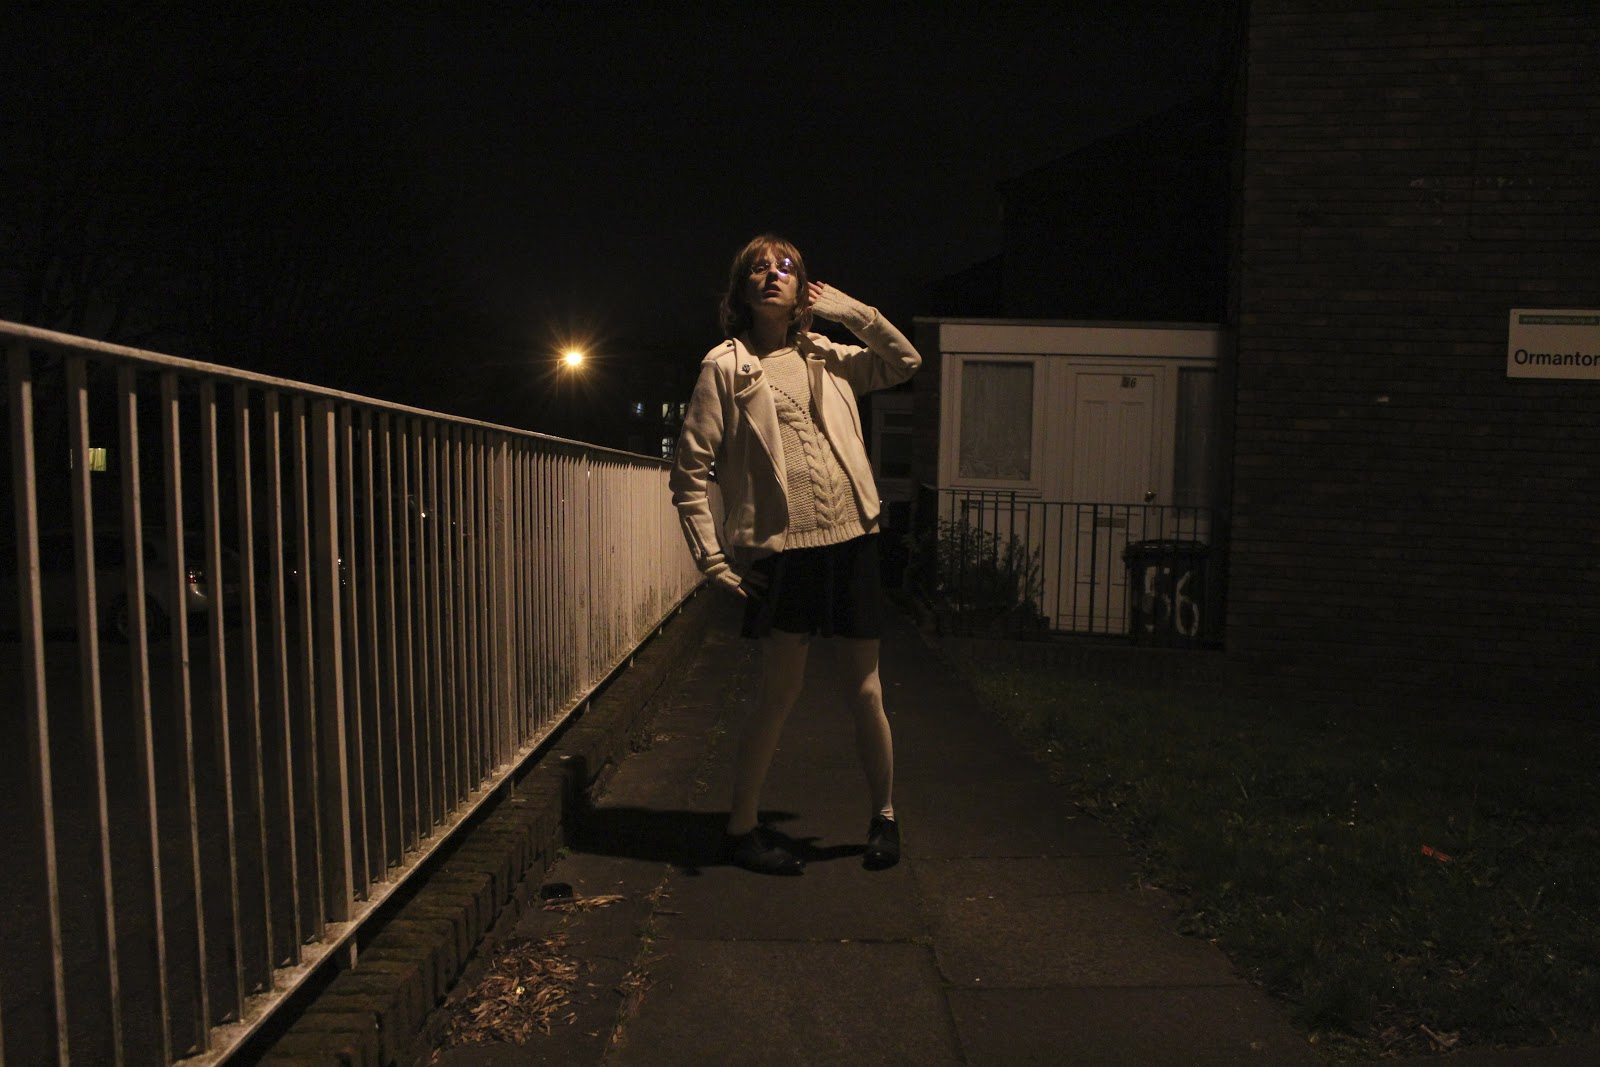 A woman strikes a pose on a pathway behind some houses. She looks like a child playing at being an adult.